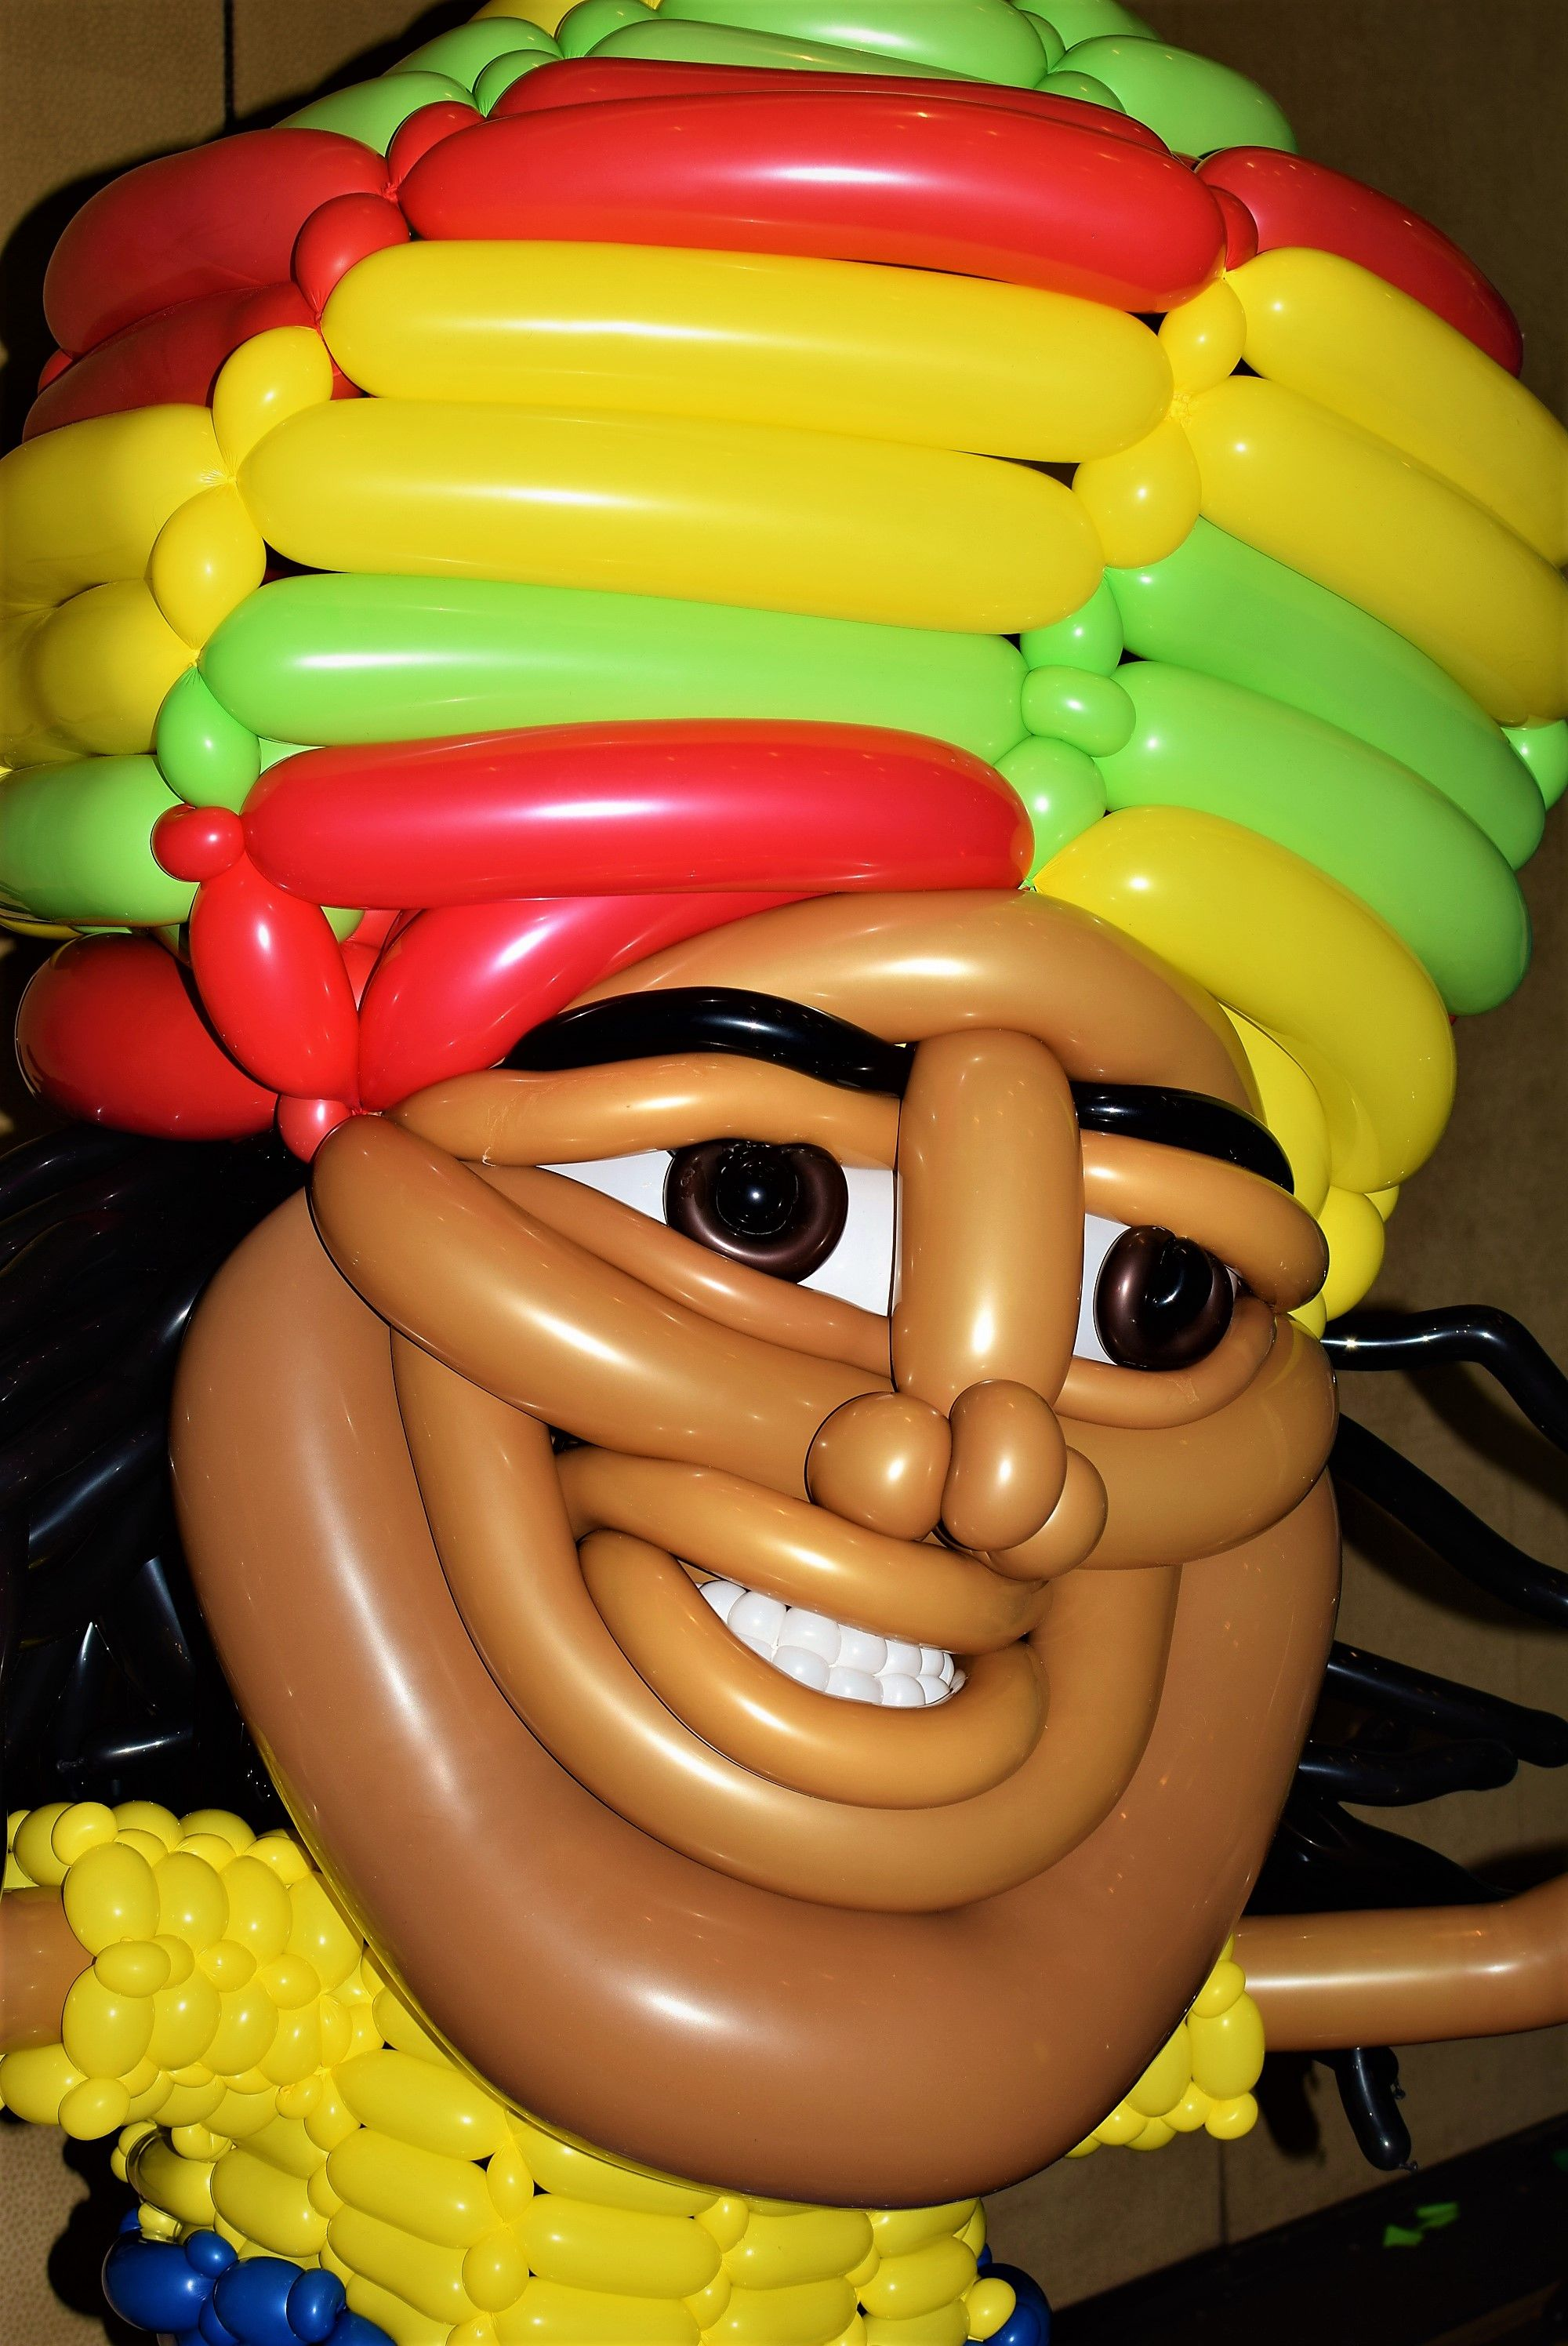 Rasta Man Large Balloon Sculpture By Las Vegas Twister Jeremy Johnston Of Atomic Company